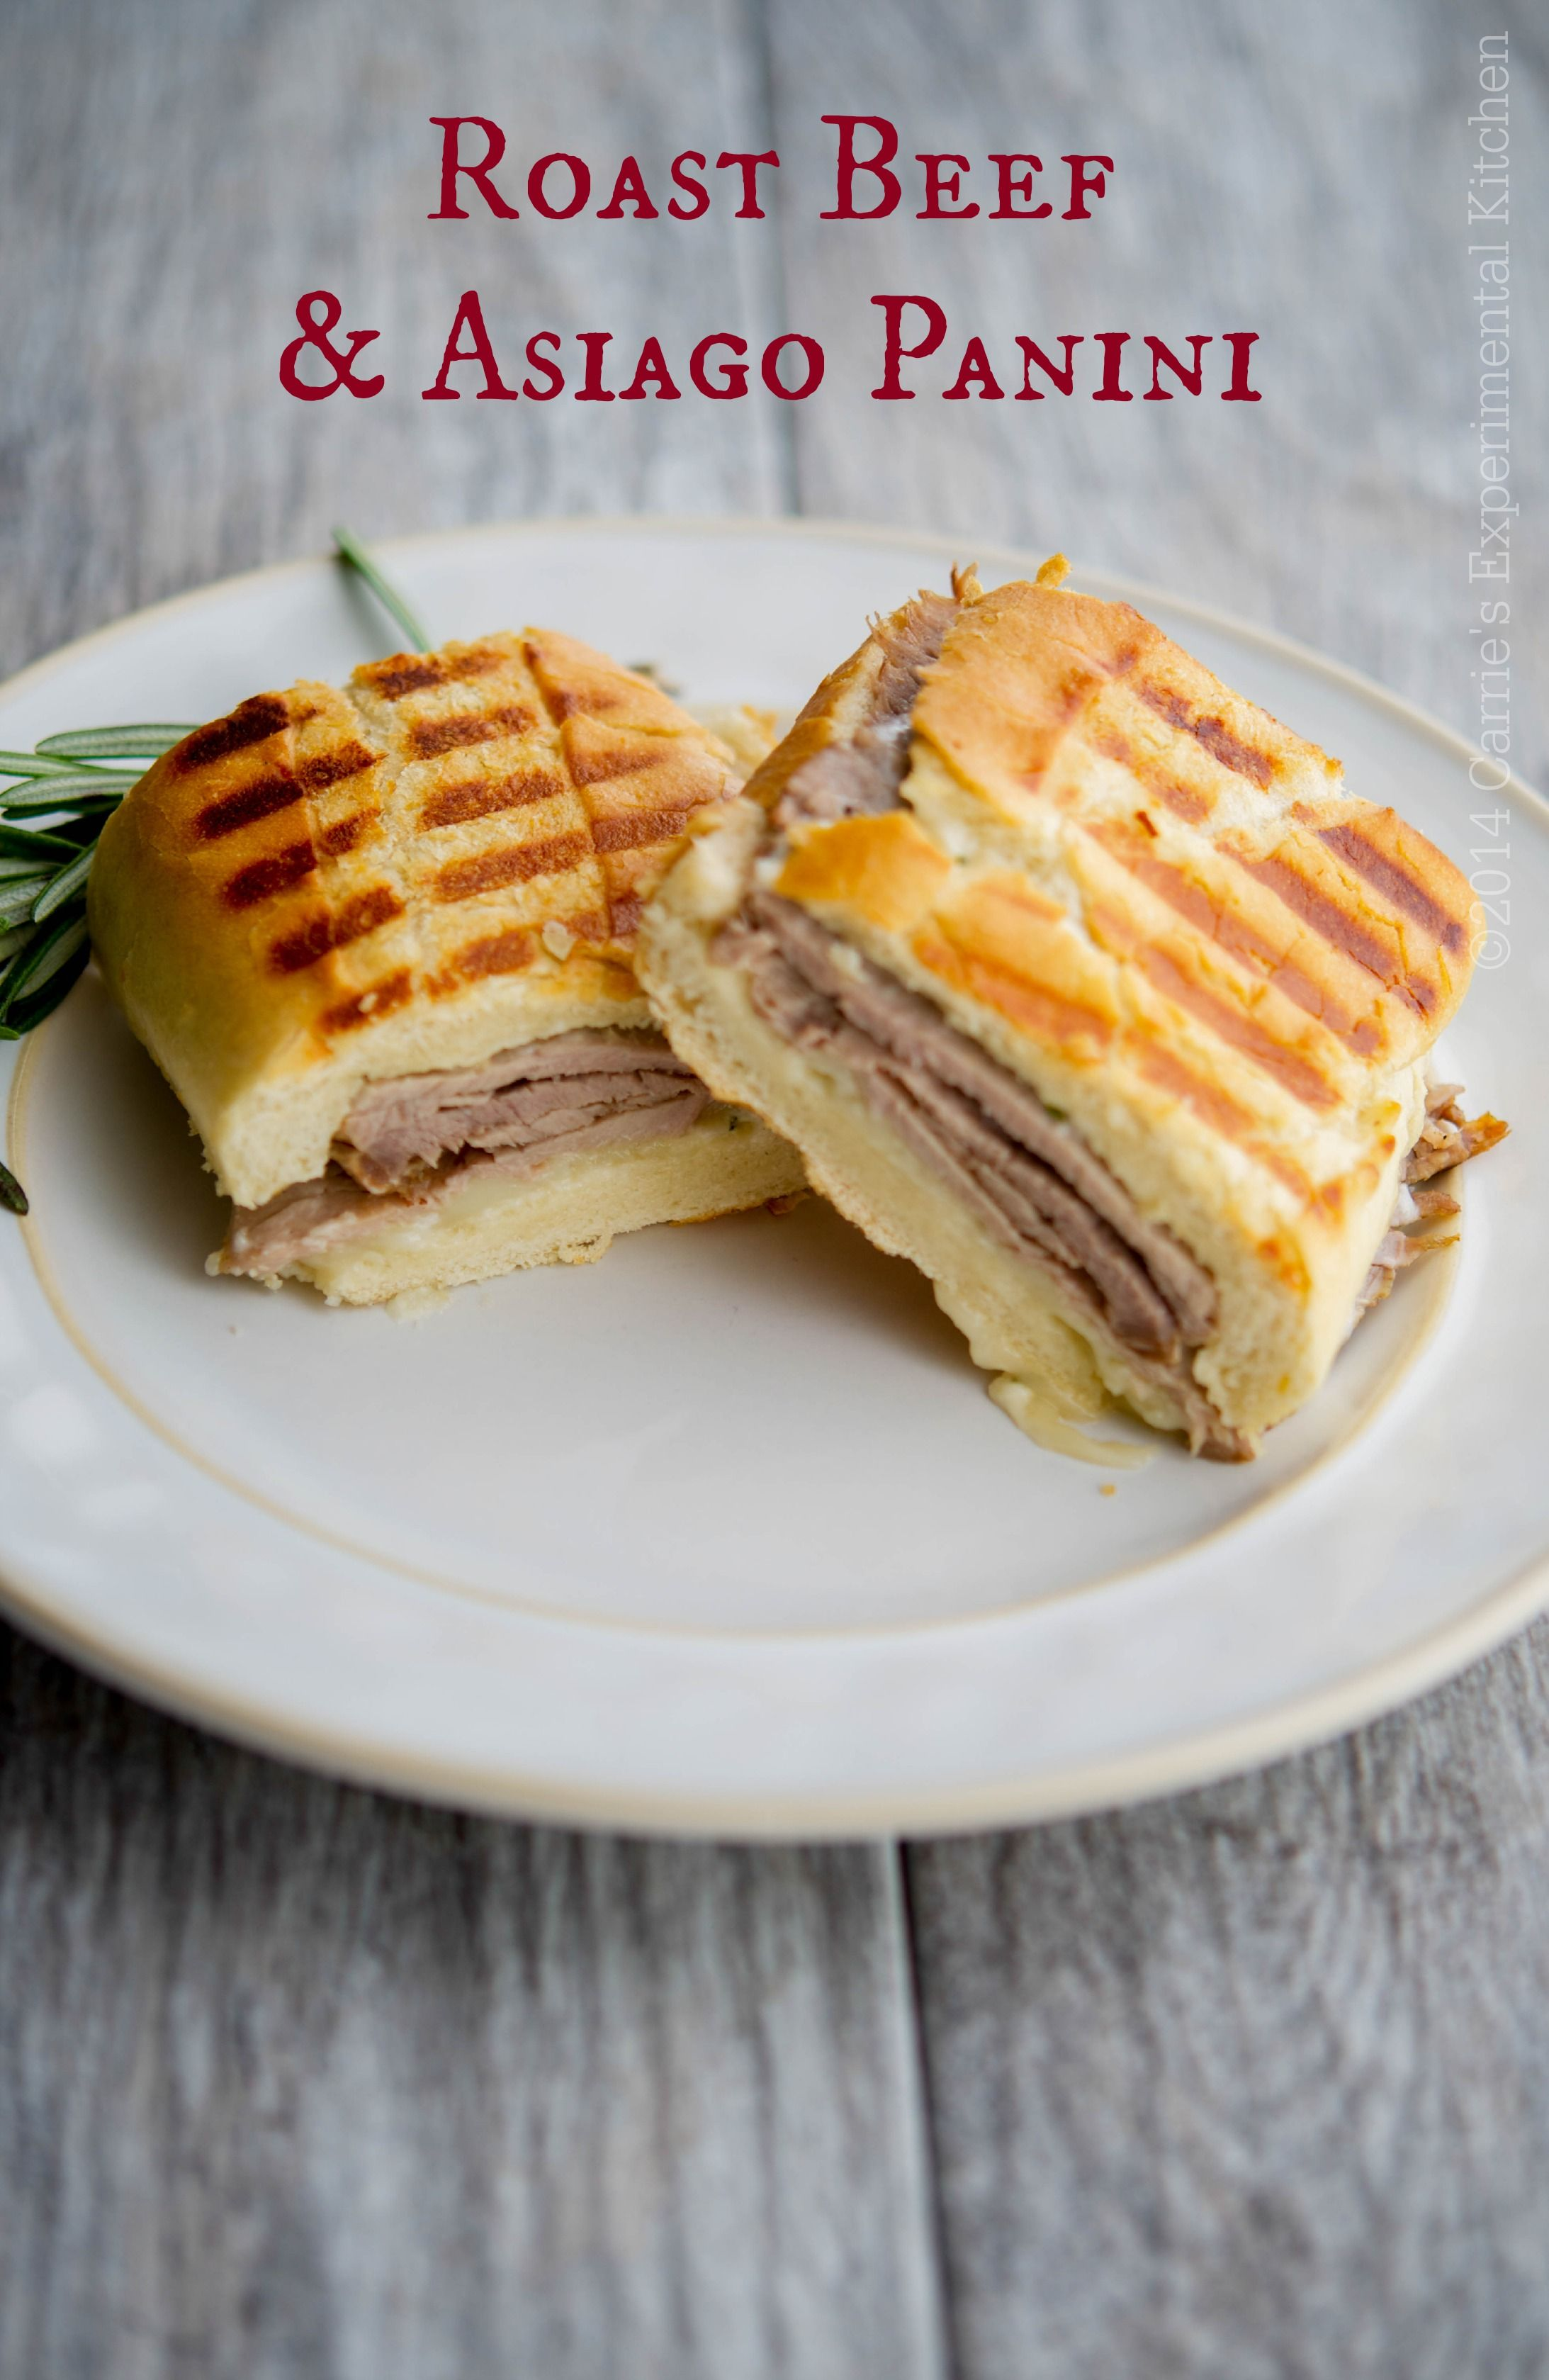 roast beef & asiago panini | recipe | burgers and sandwiches